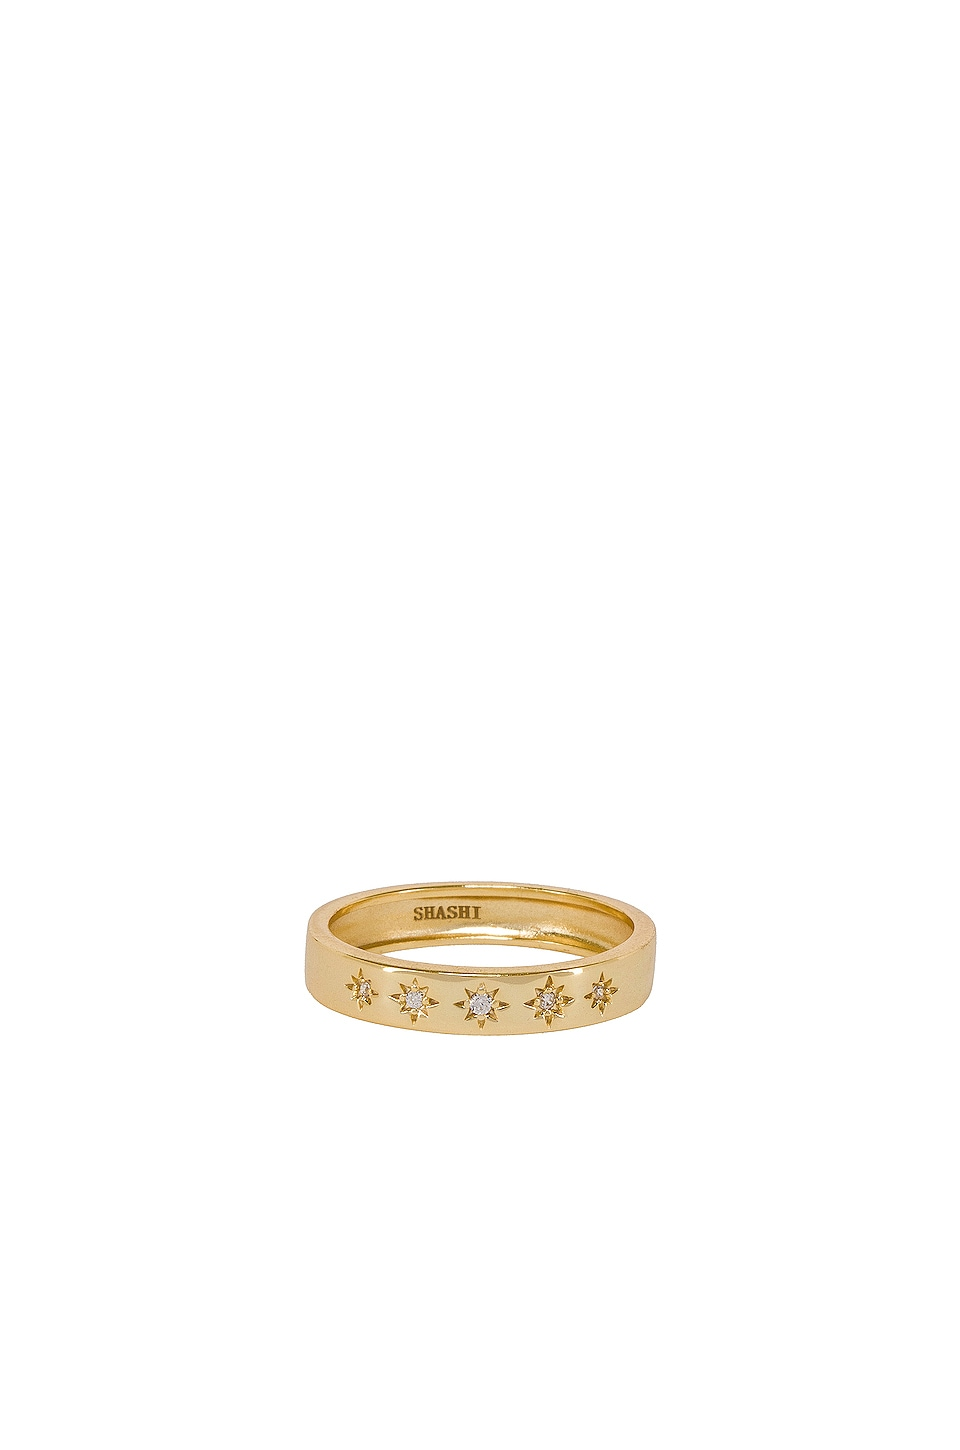 Shashi TWINKLE BAND RING